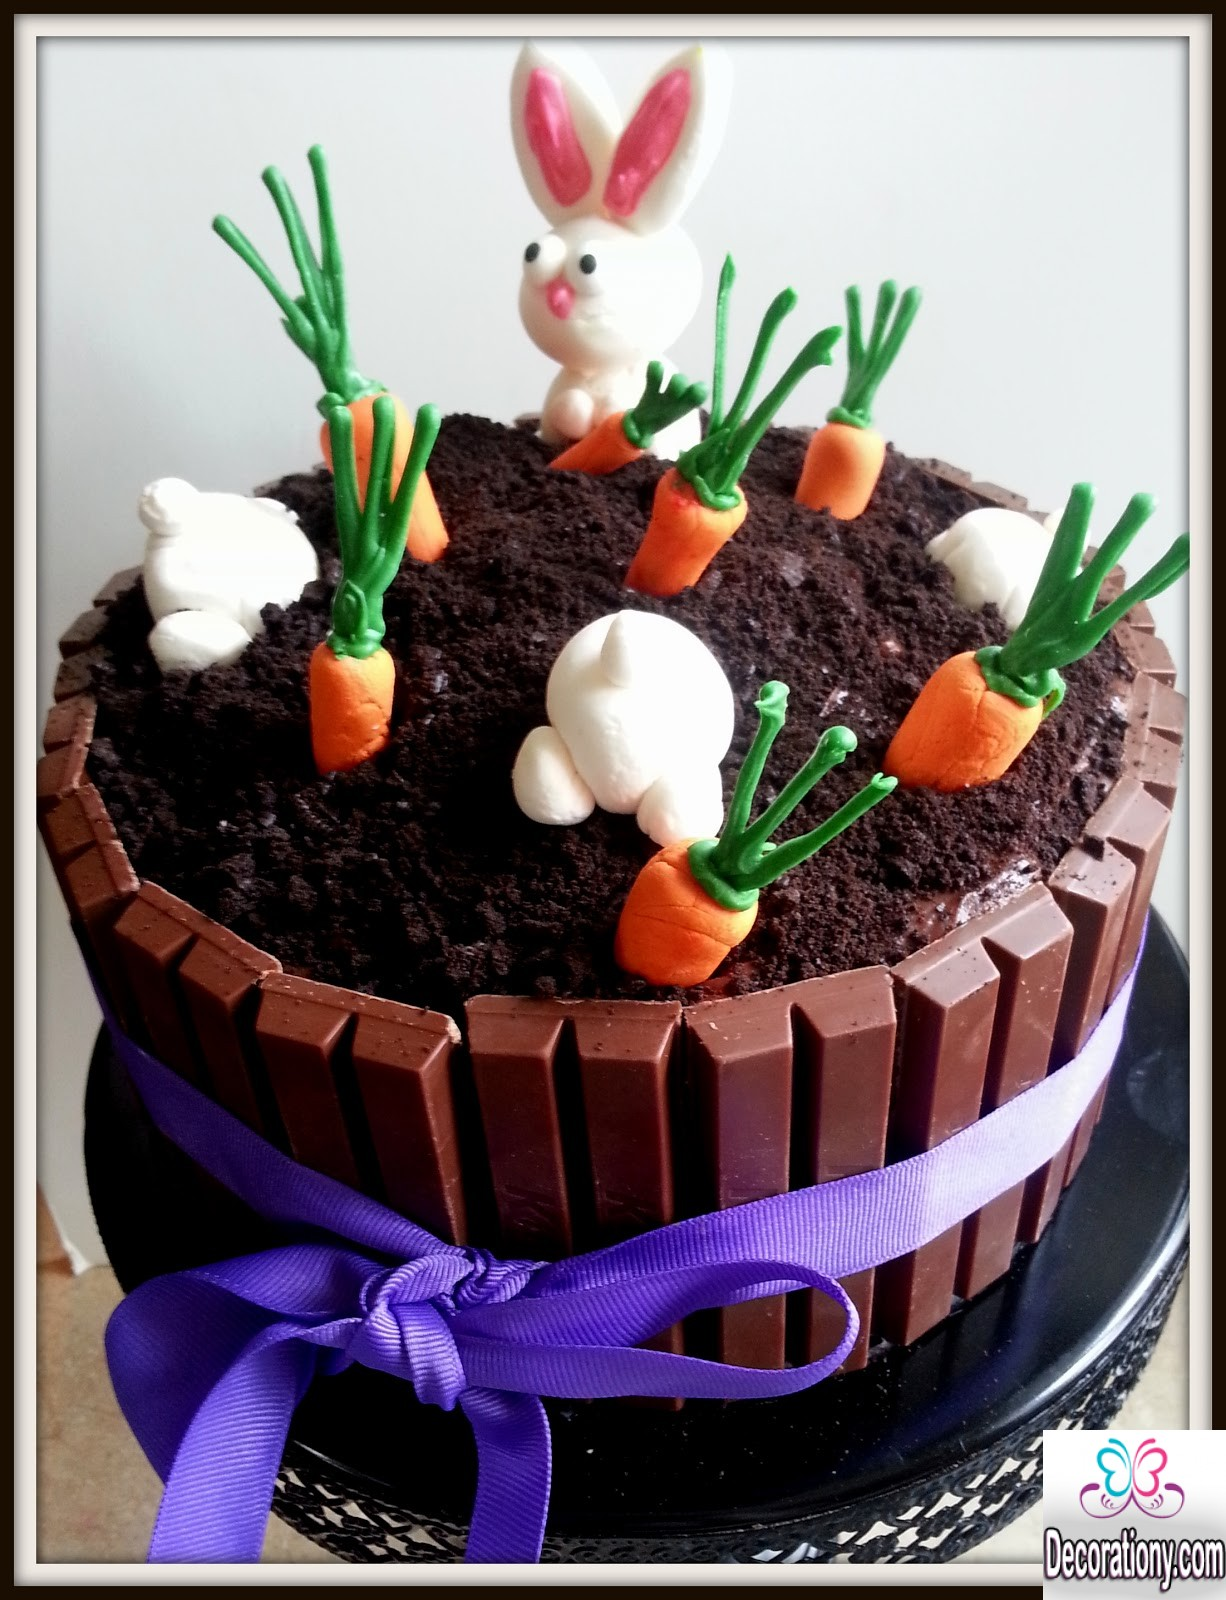 cute easter bunny cake decorating ideas decoration y. Black Bedroom Furniture Sets. Home Design Ideas